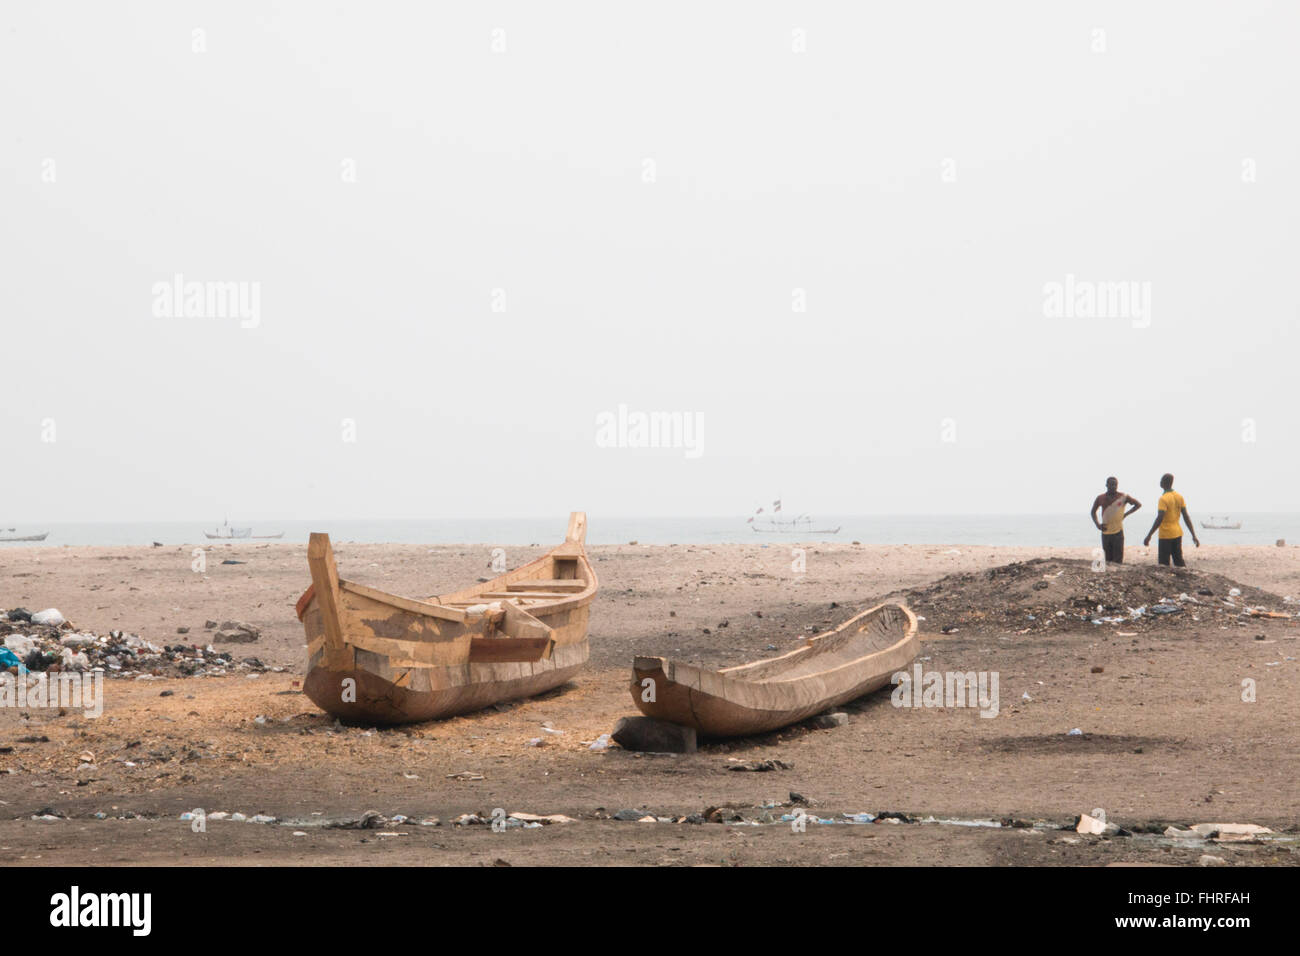 ACCRA, GHANA - JANUARY 2016: People and fishing boats on a beach in Jamestown, Accra, Ghana at the Gulf of Guinea - Stock Image